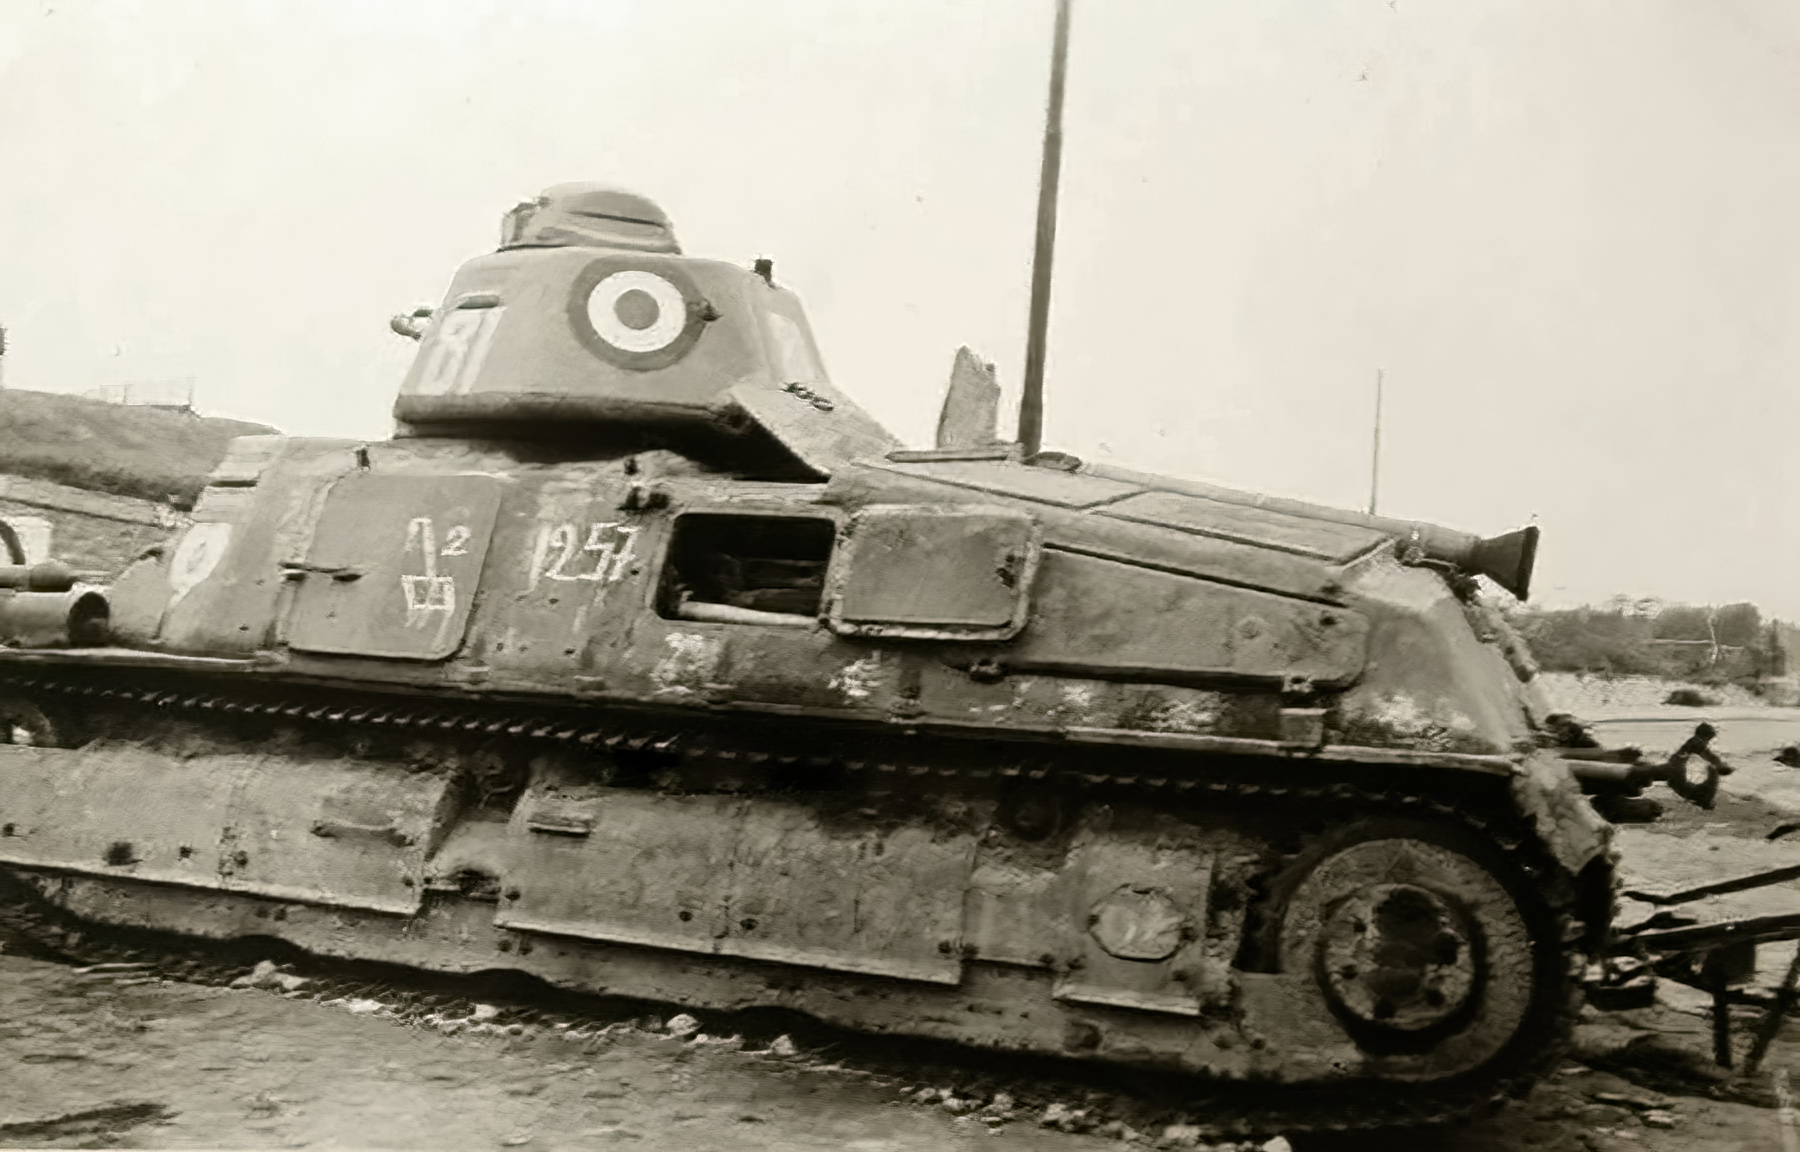 French Army Somua S35 White 81 abandoned along a roadside France June 1940 ebay 01